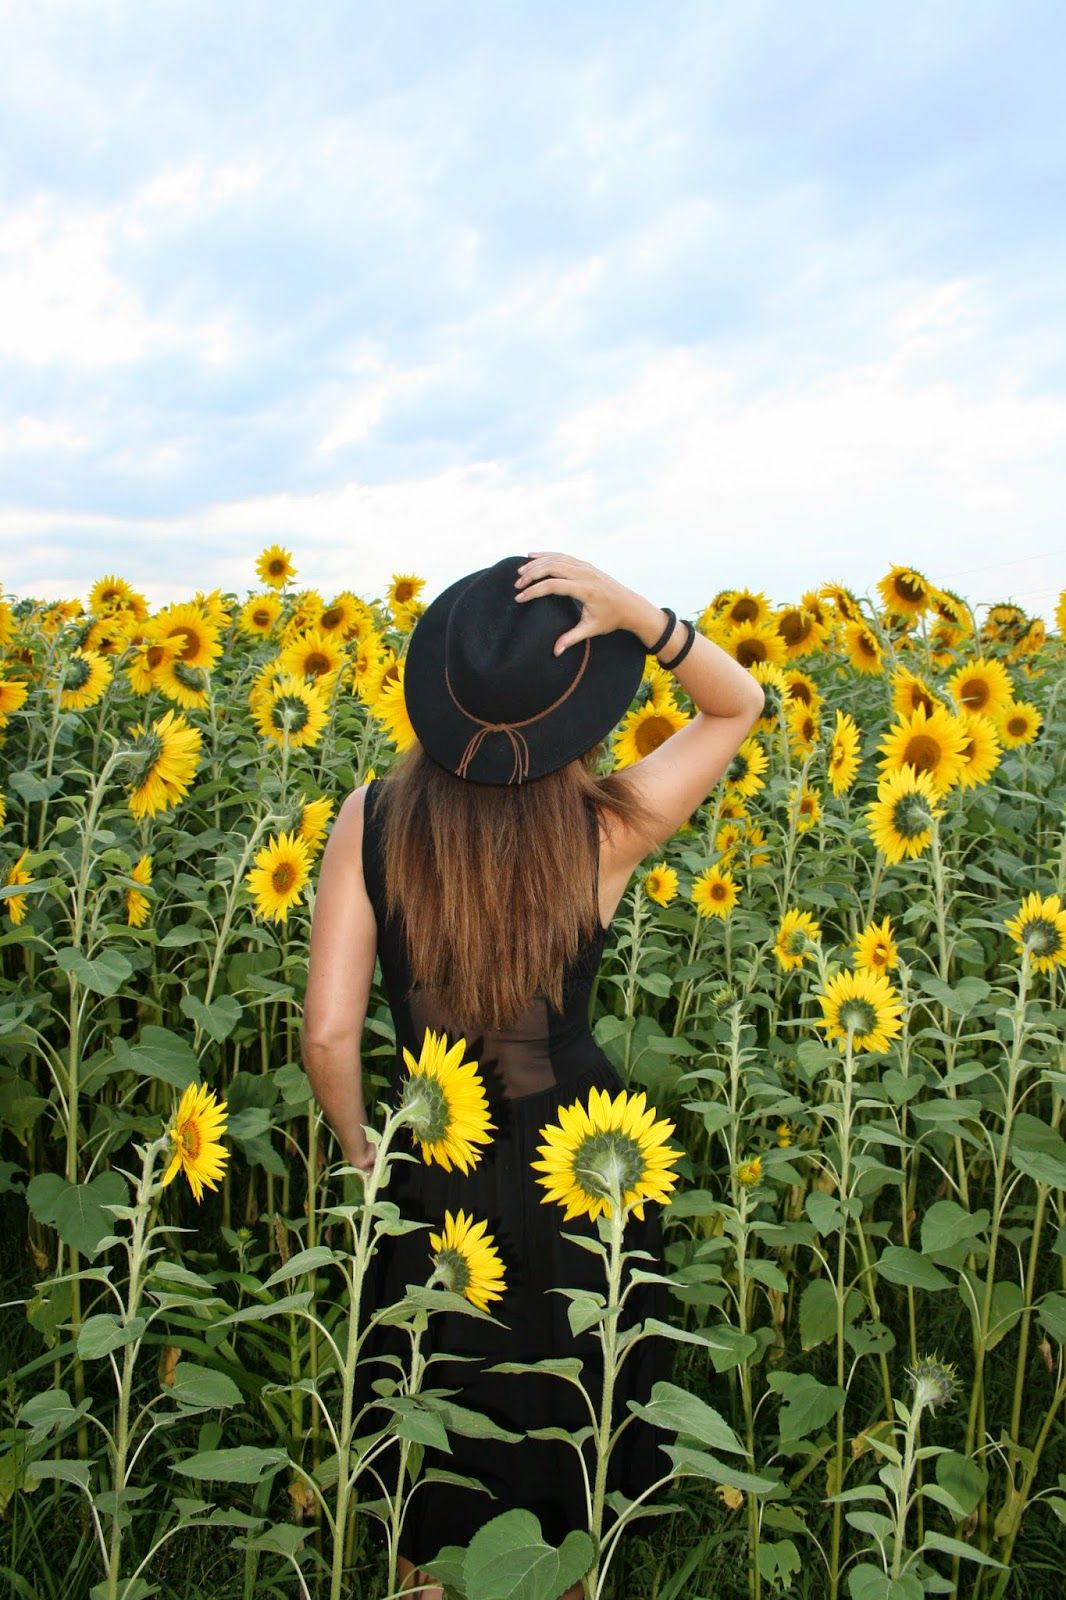 Campo girasoles sunflowers asturias ideas - Fotos pinterest ...